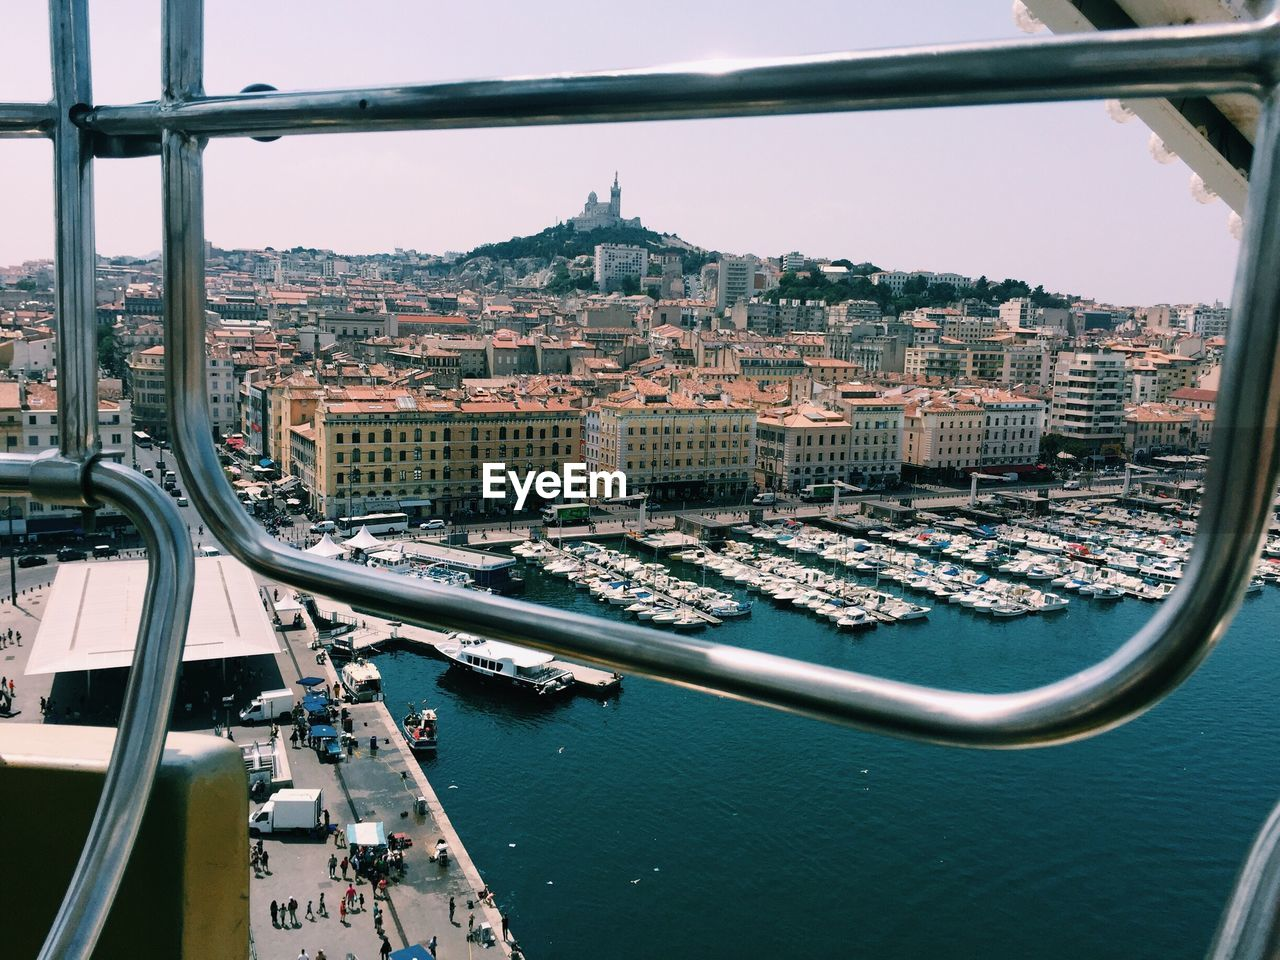 Boats Moored At Harbor In City Seen Through Railing Of Ferris Wheel